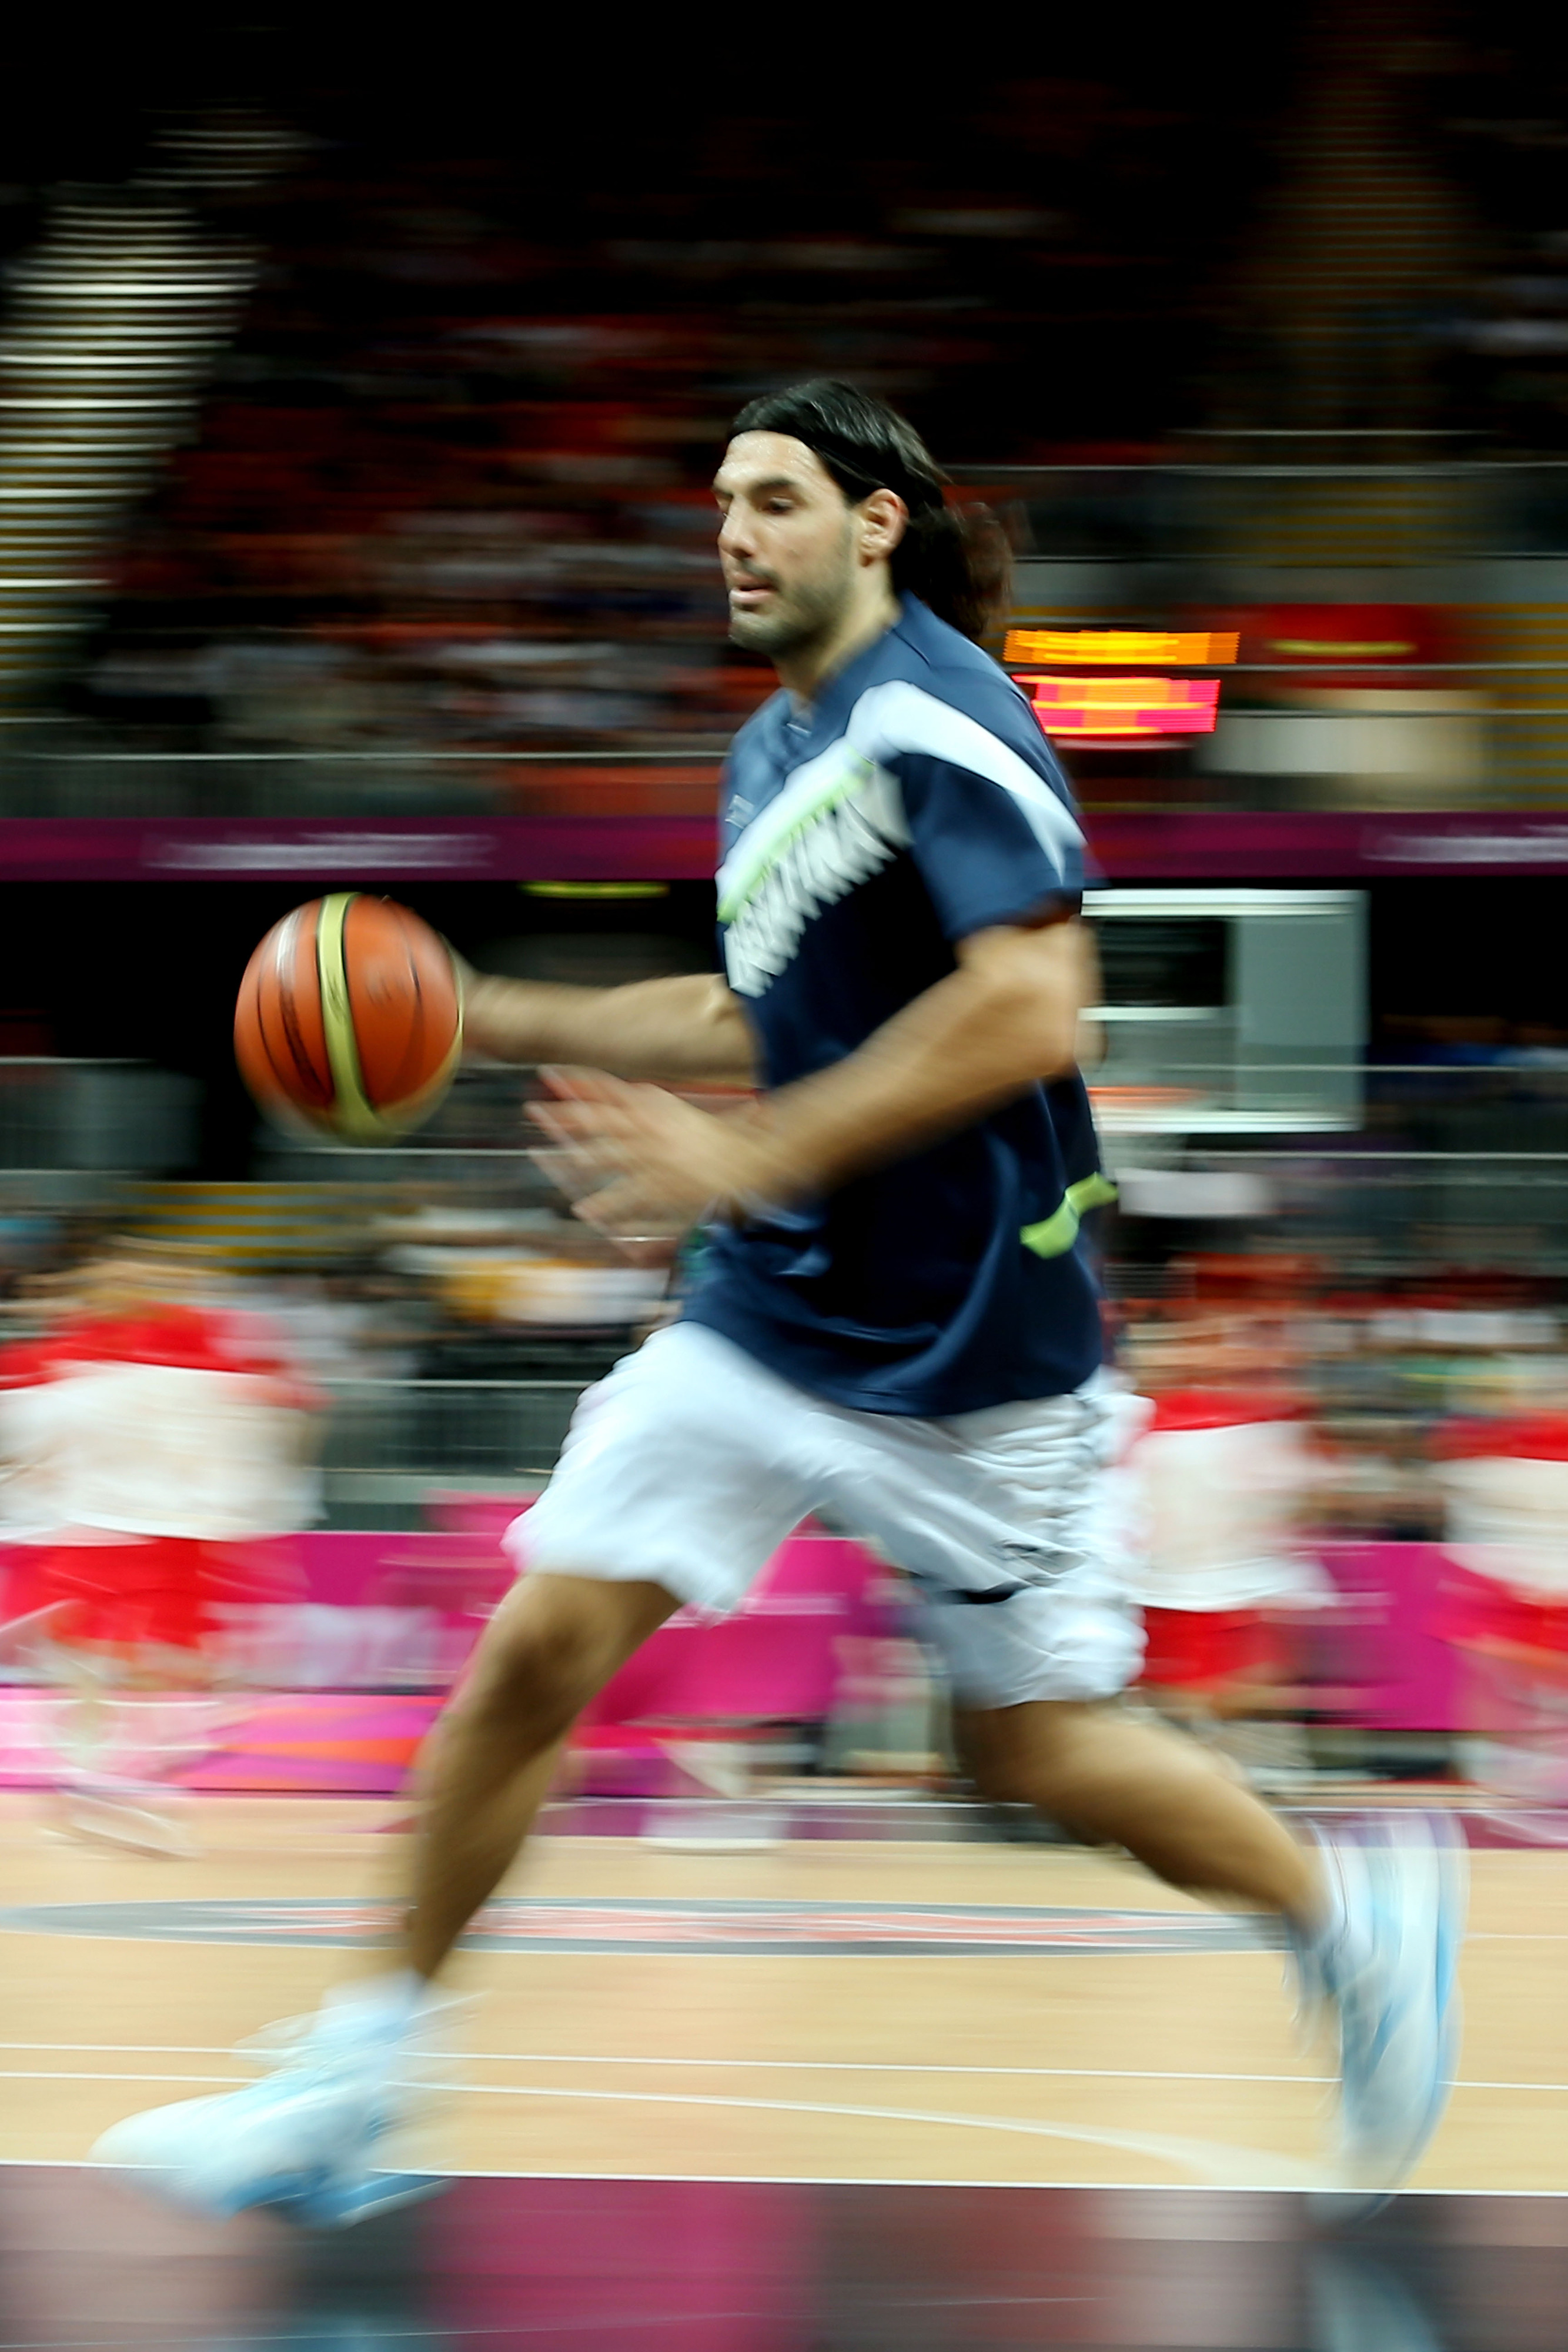 The Olympic Basketball Tournament's leading scorer will look to take down Team USA....and blind us all with this blurry photo.